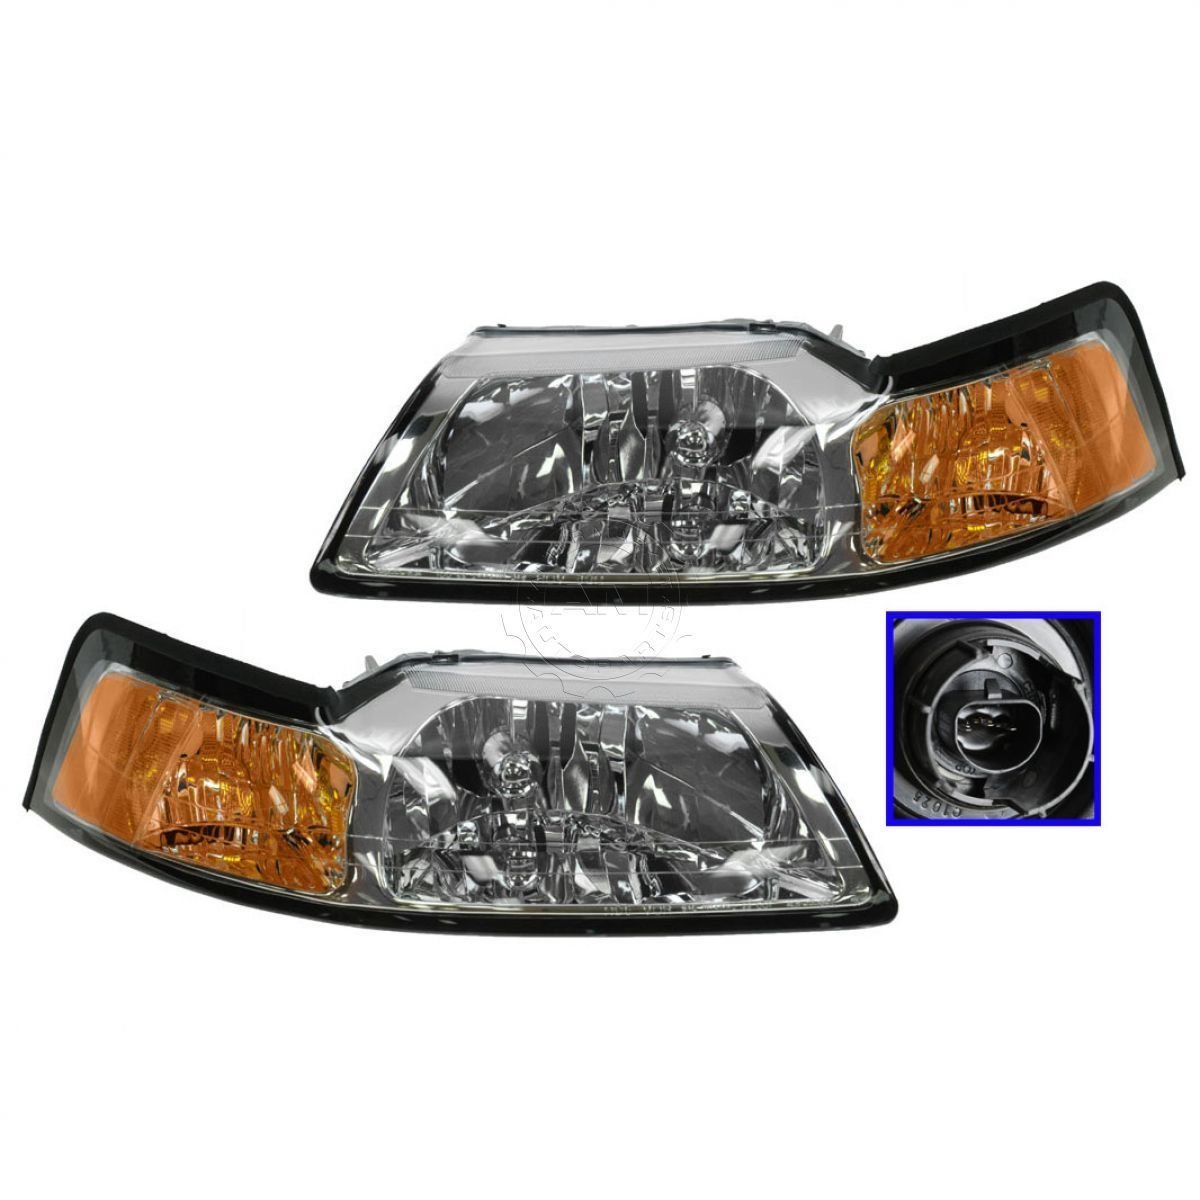 Headlights Headlamps w/ Chrome Bezel Left & Right Pair Set for 99-04 Mustang by Aftermarket